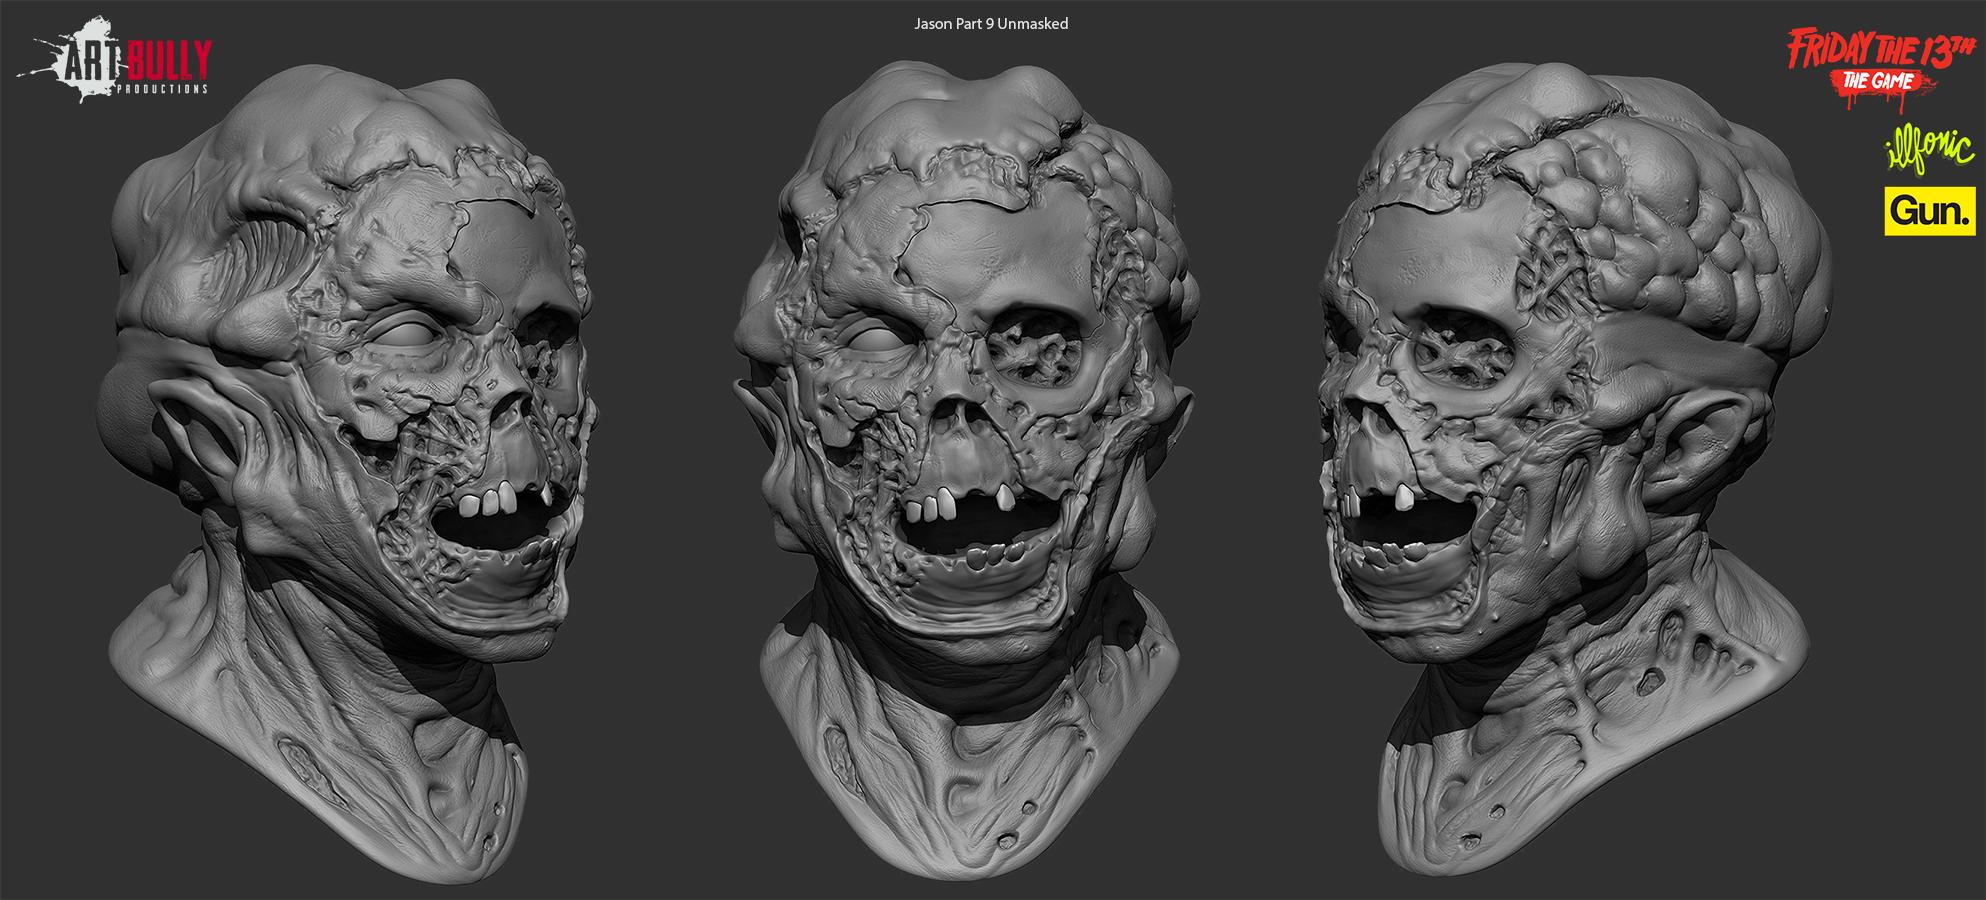 Jason_Part9_Highpoly_Unmasked_CU_01.png